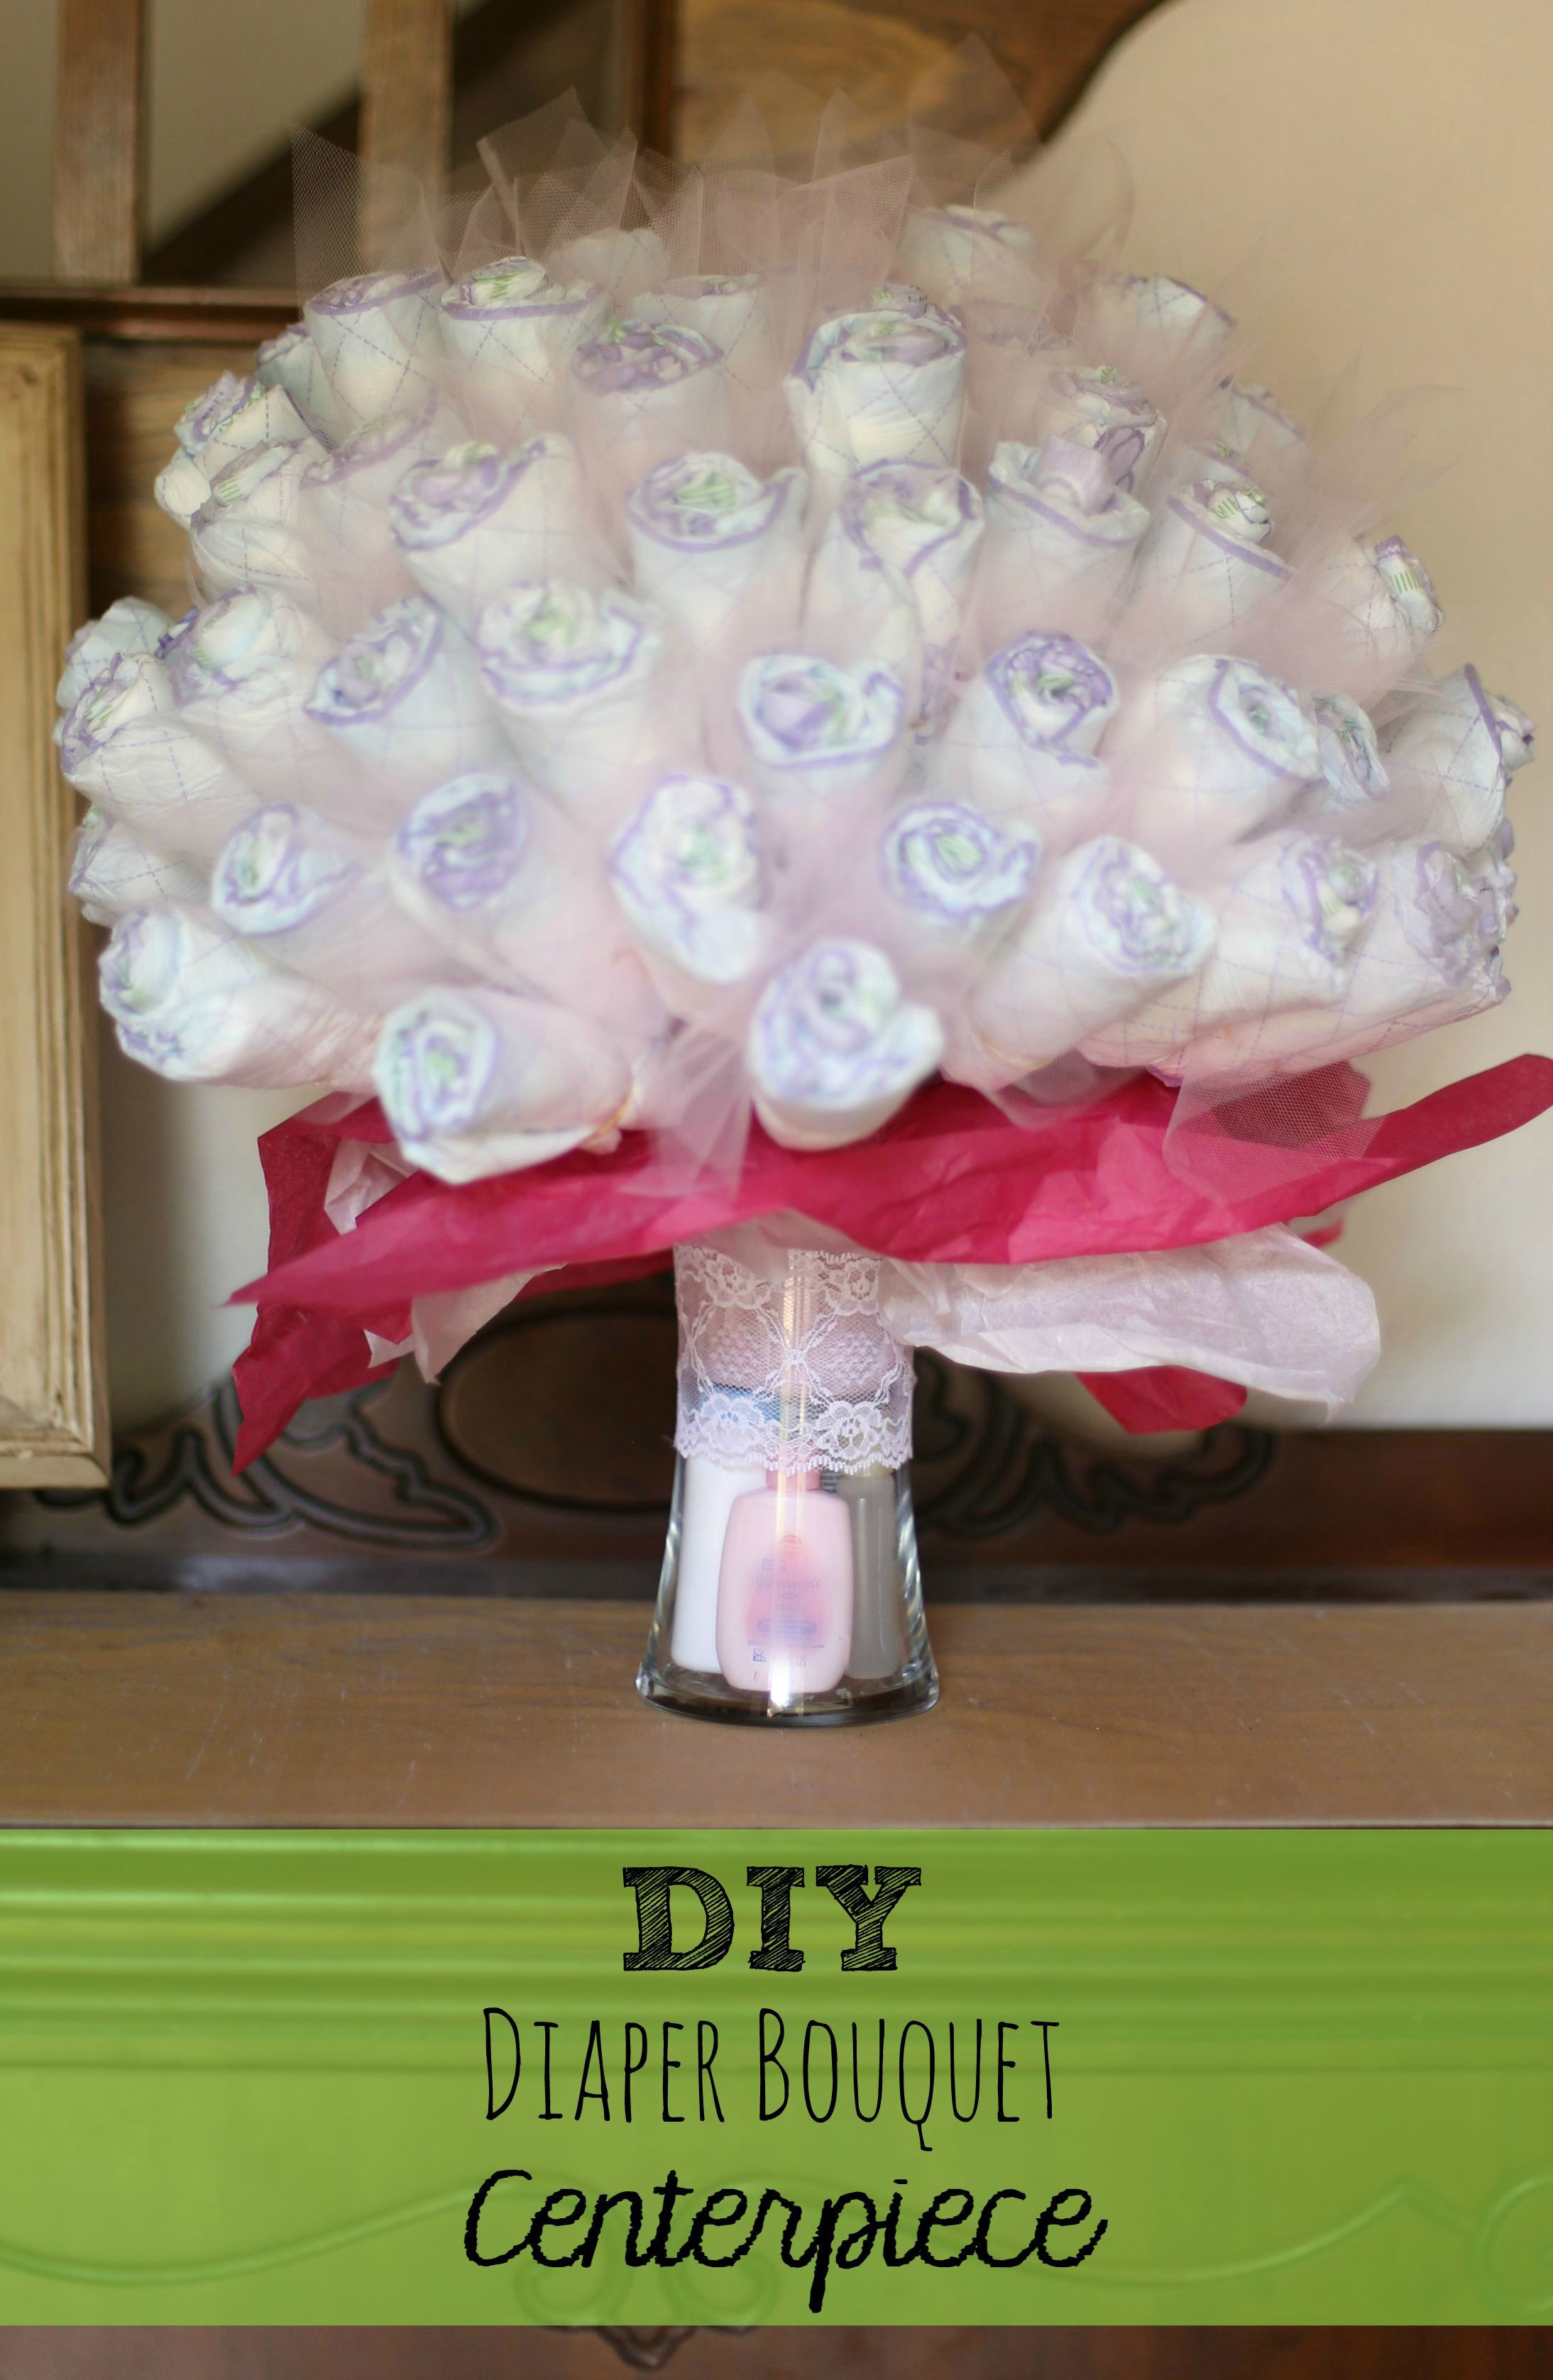 Best ideas about Diaper Ideas For Baby Shower Gift . Save or Pin DIY Diaper Bouquet Centerpiece perfect baby shower t Now.